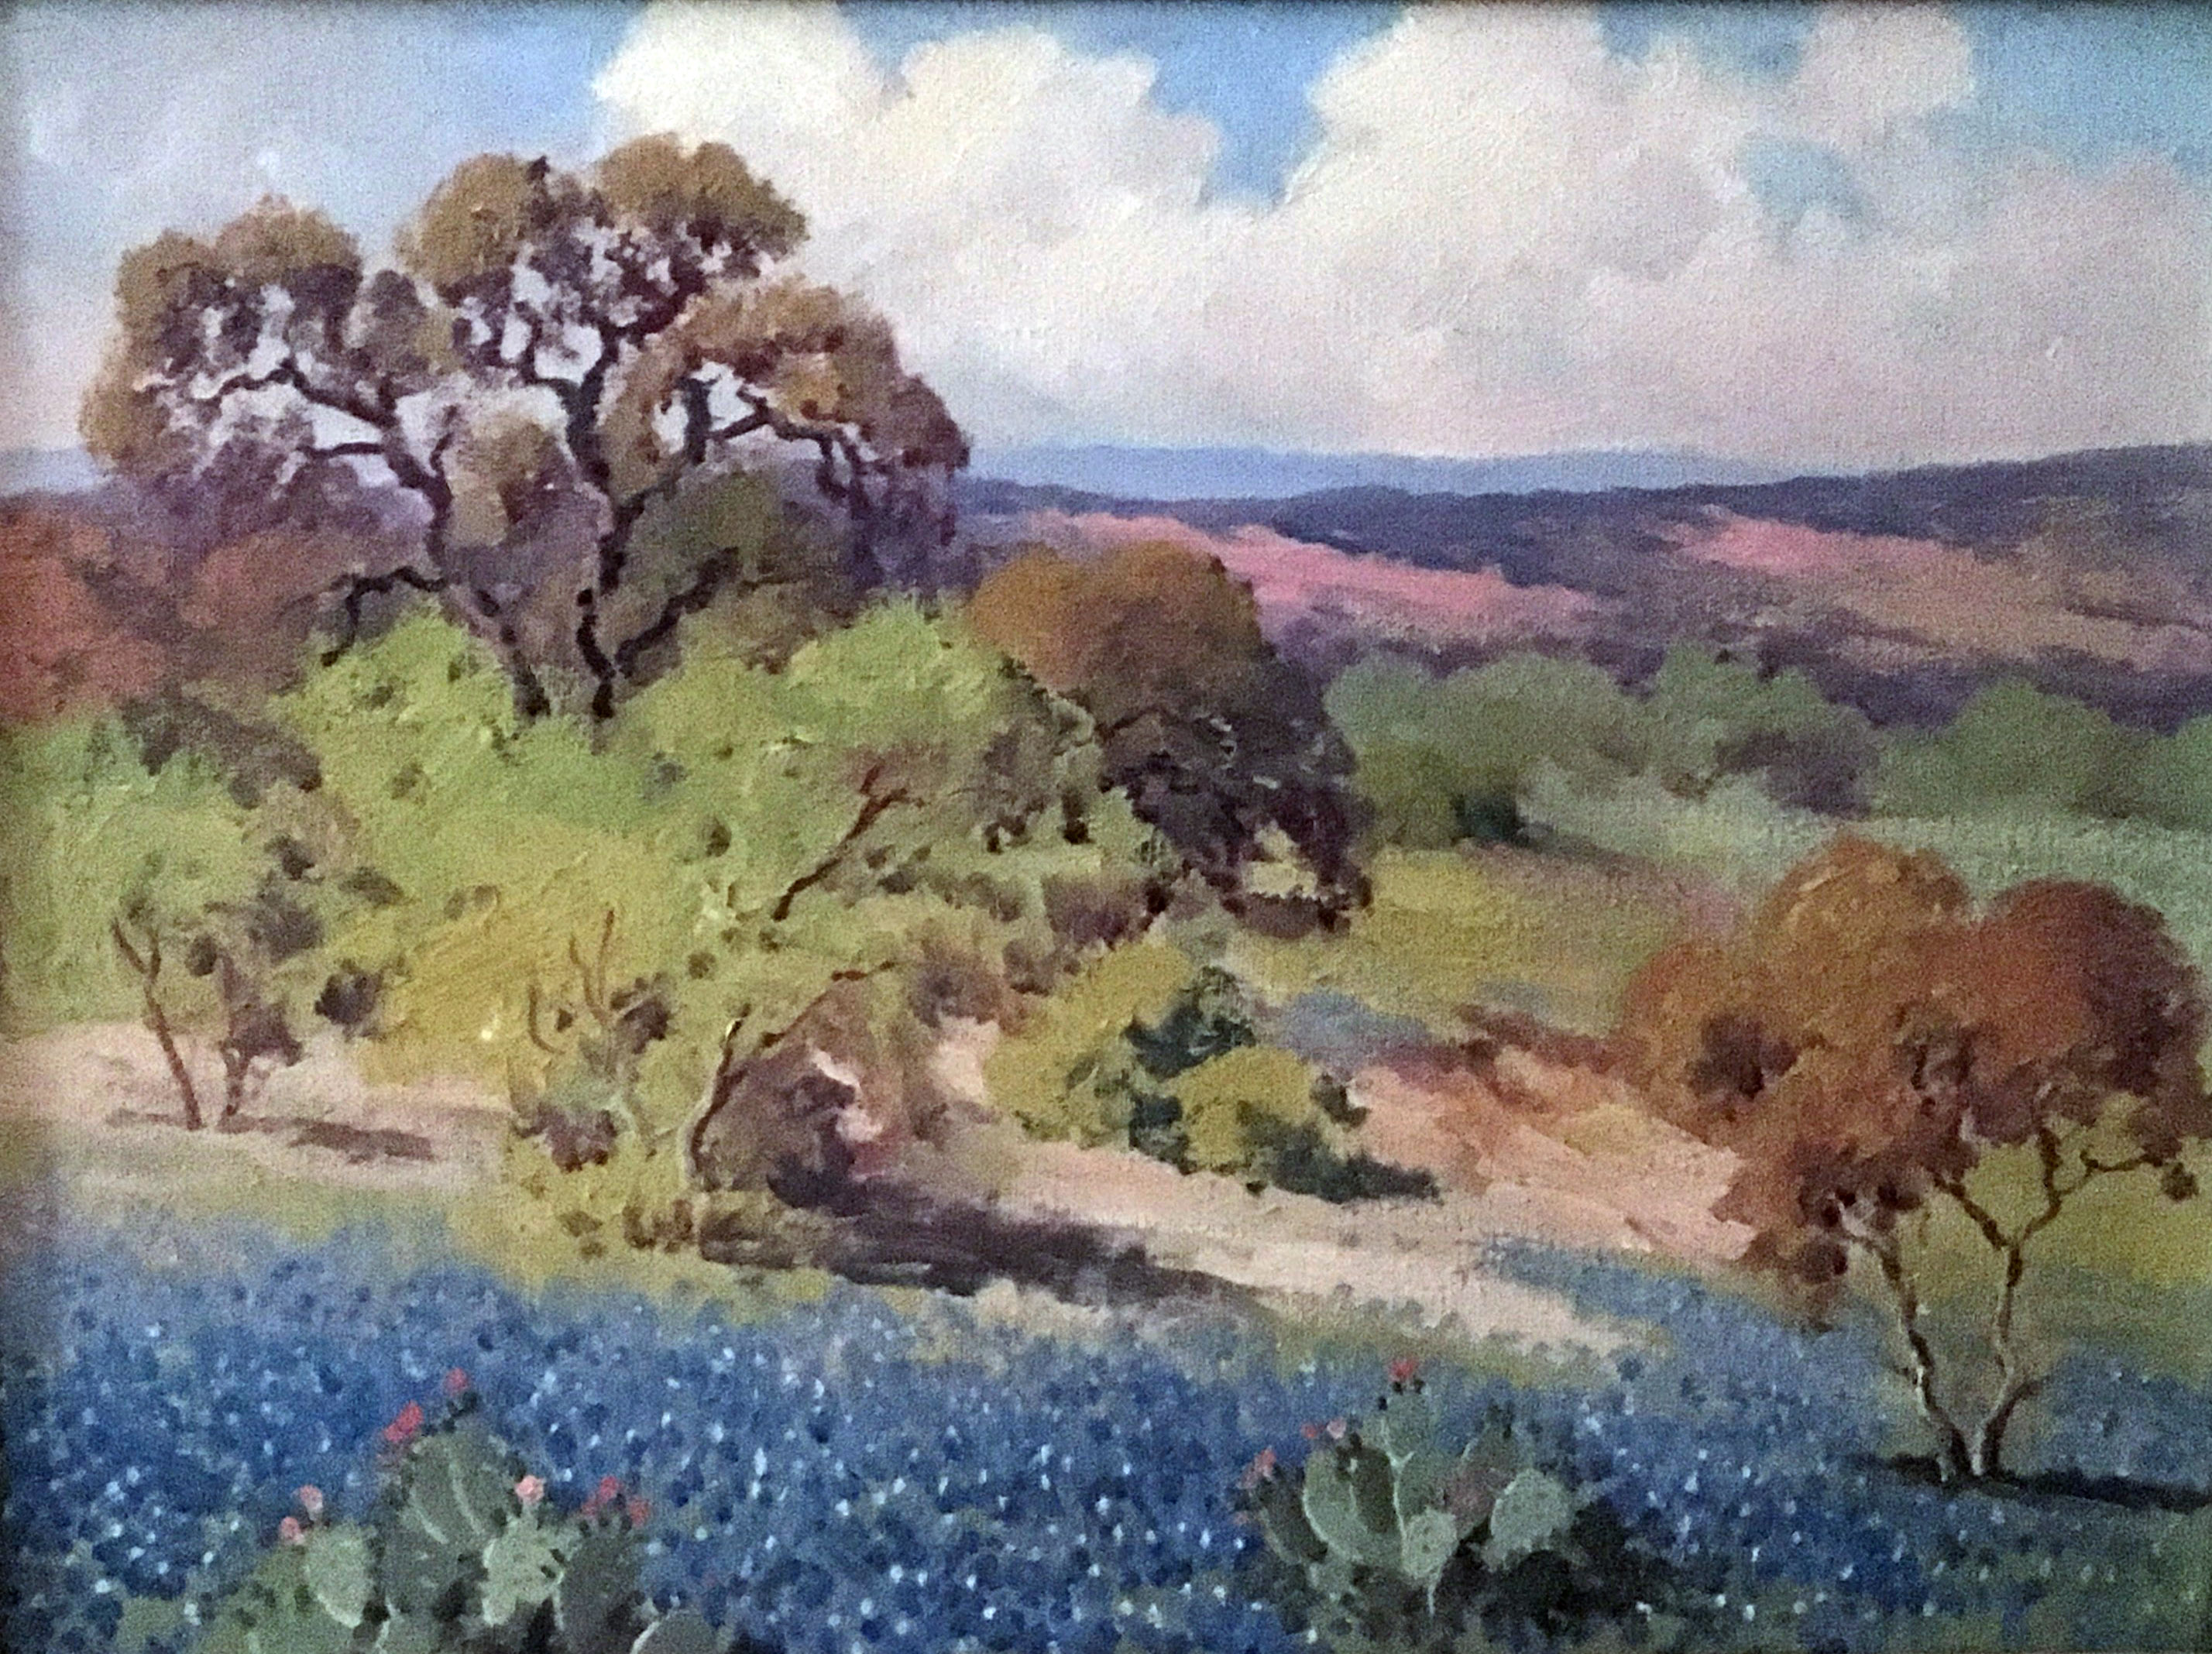 Image 14_bluebonnets_Robert Wood